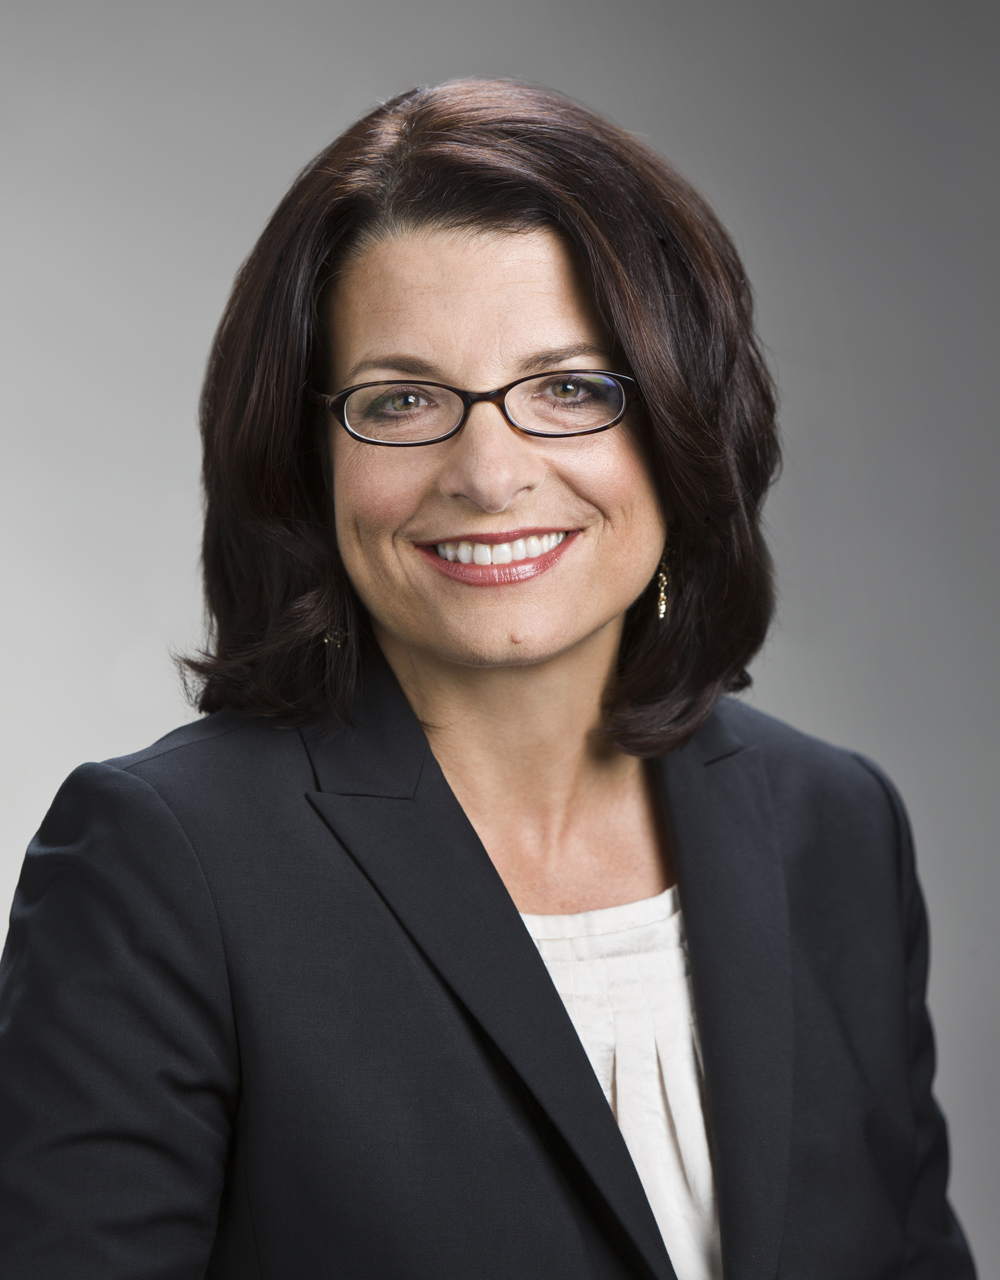 Kathy Pickering is the executive director of The Tax Institute at H&R Block. With more than a decade of experience in tax operations and 25 years in information technology, Pickering is responsible for the strategic direction and management for a team of the nation's top experts on tax issues. Prior to joining H&R Block, Pickering worked with Sprint PCS, Olsten Health Services and various consulting firms where she focused on implementing accounting and financial systems, and leading Enterprise Resource Planning (ERP) software implementations, such as JD Edwards and PeopleSoft software.